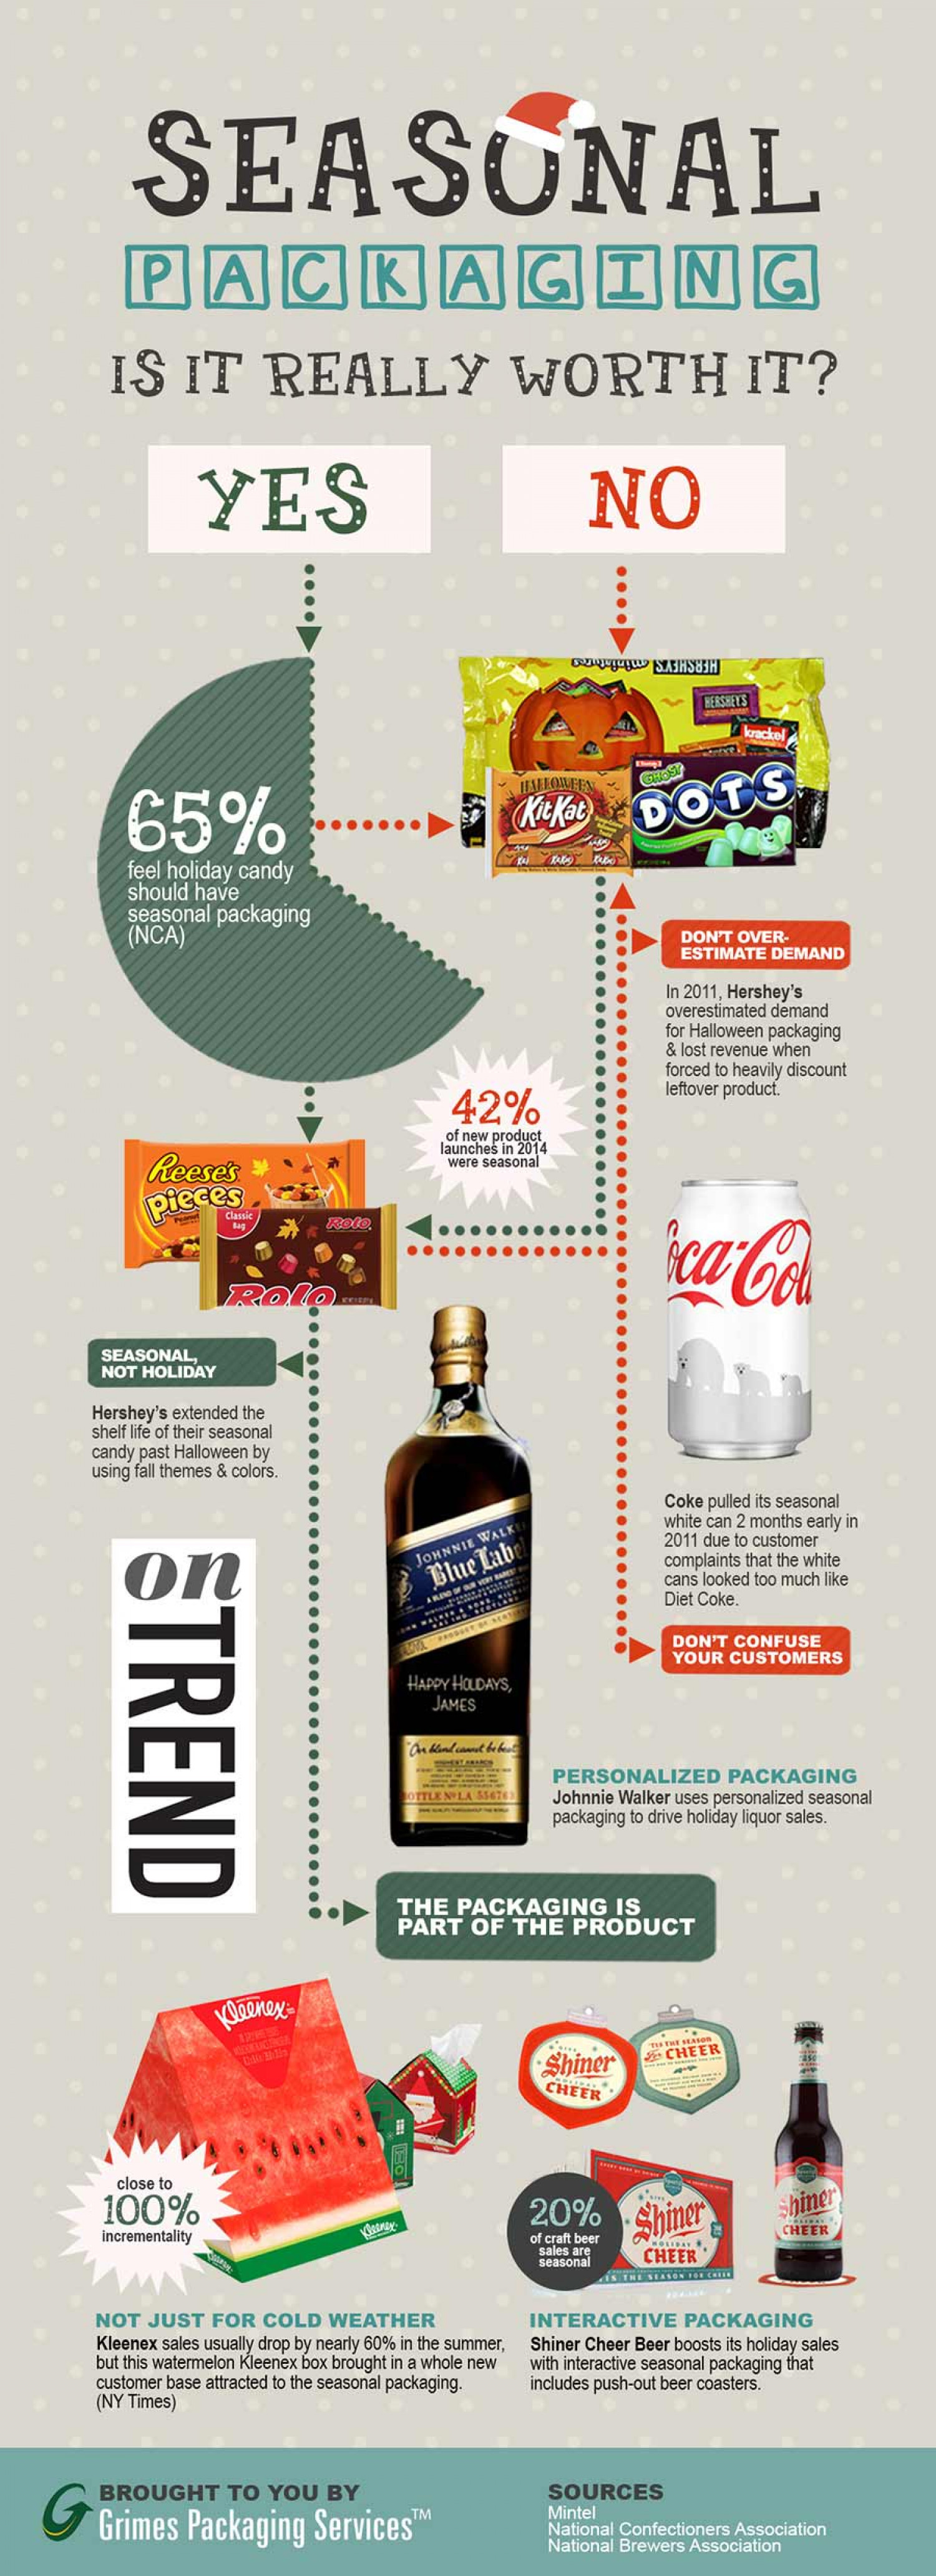 Holiday & Seasonal Packaging: Is It Really Worth It? Infographic